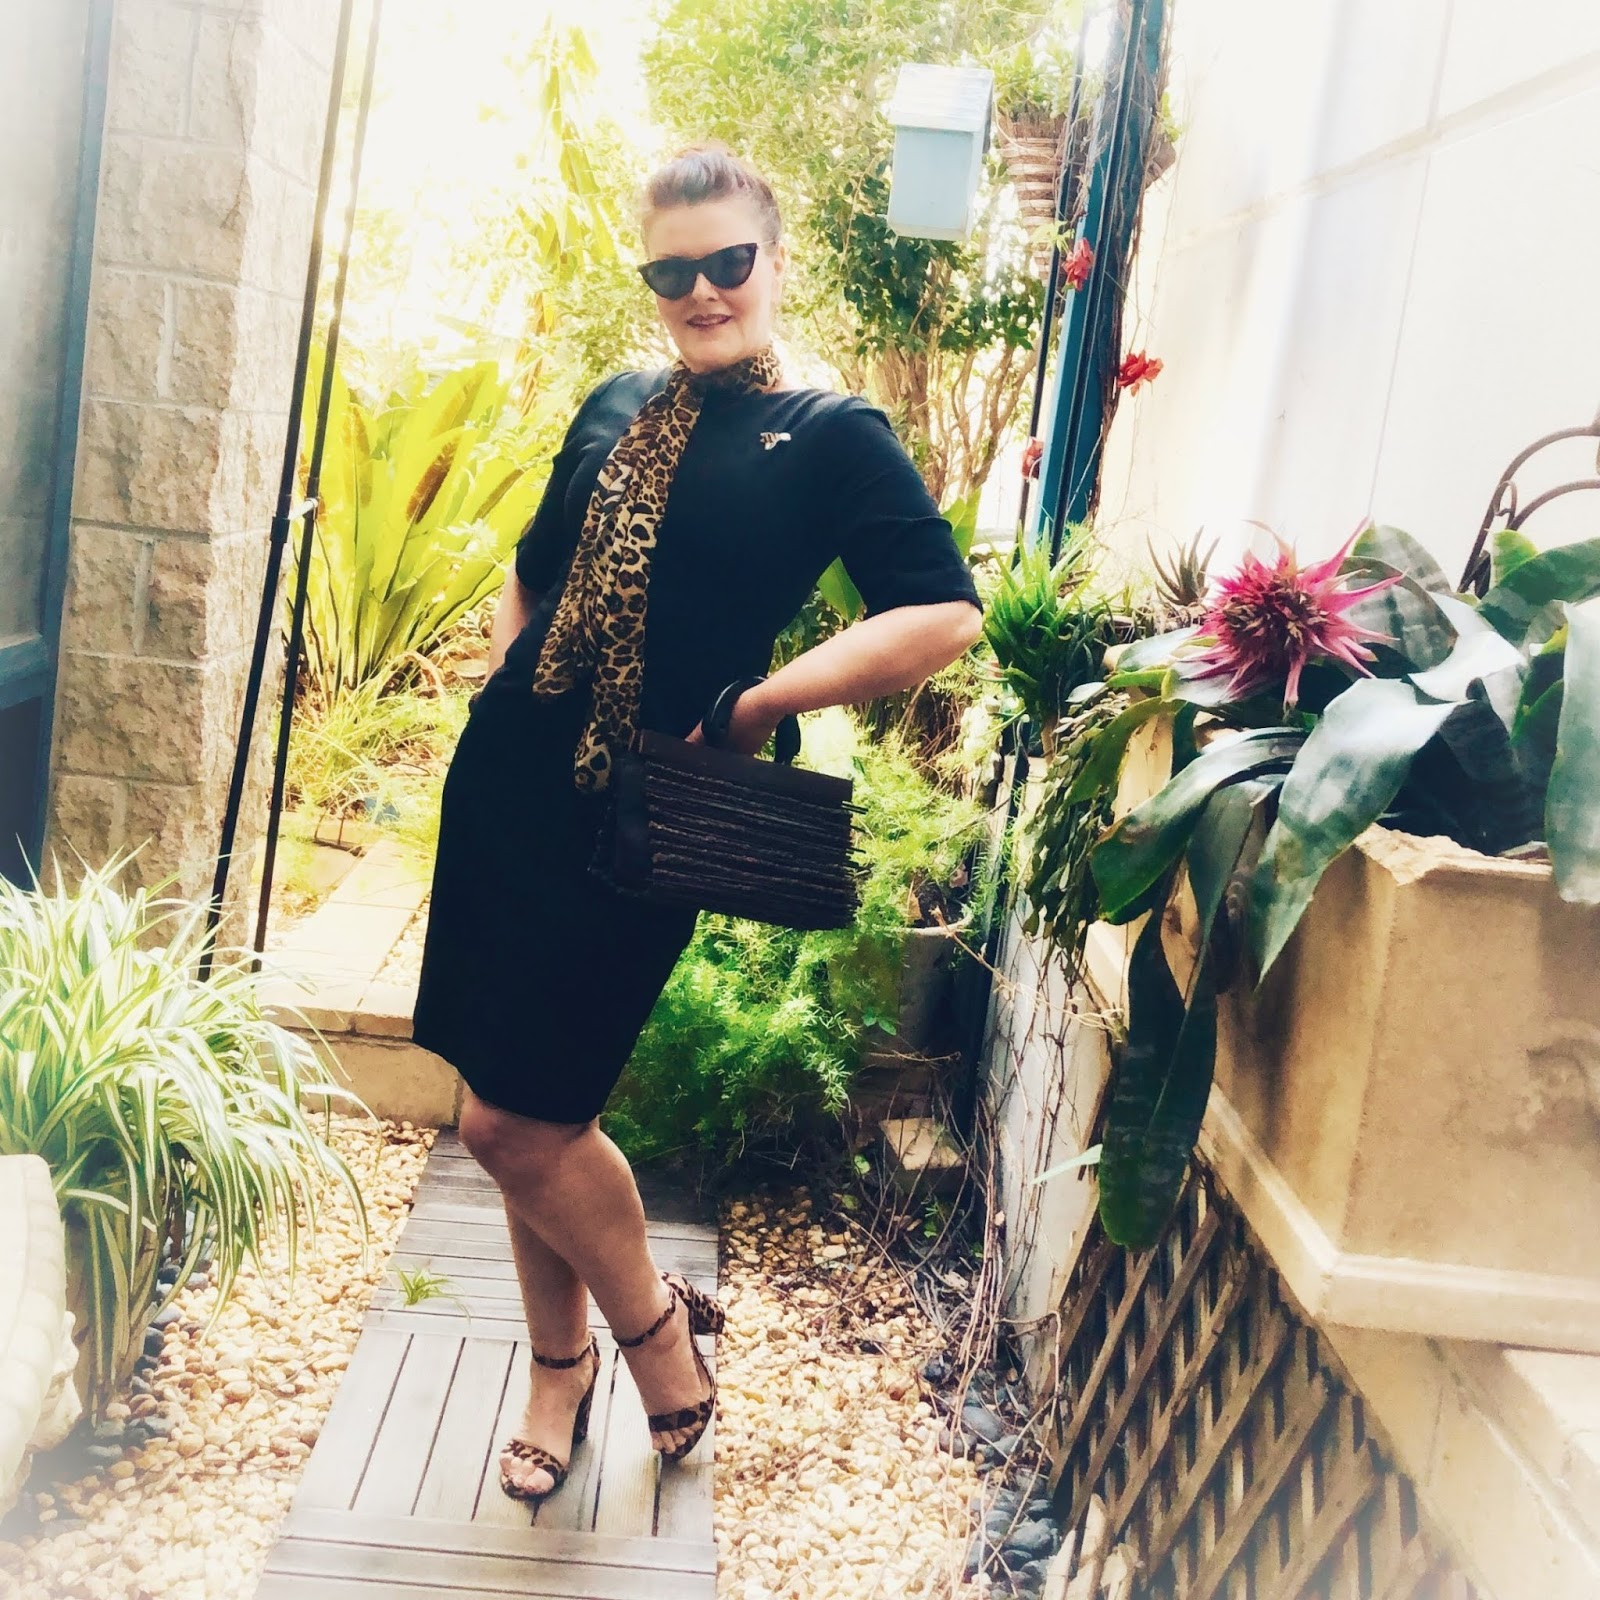 Australian blogger Donna in black with leopard skin.